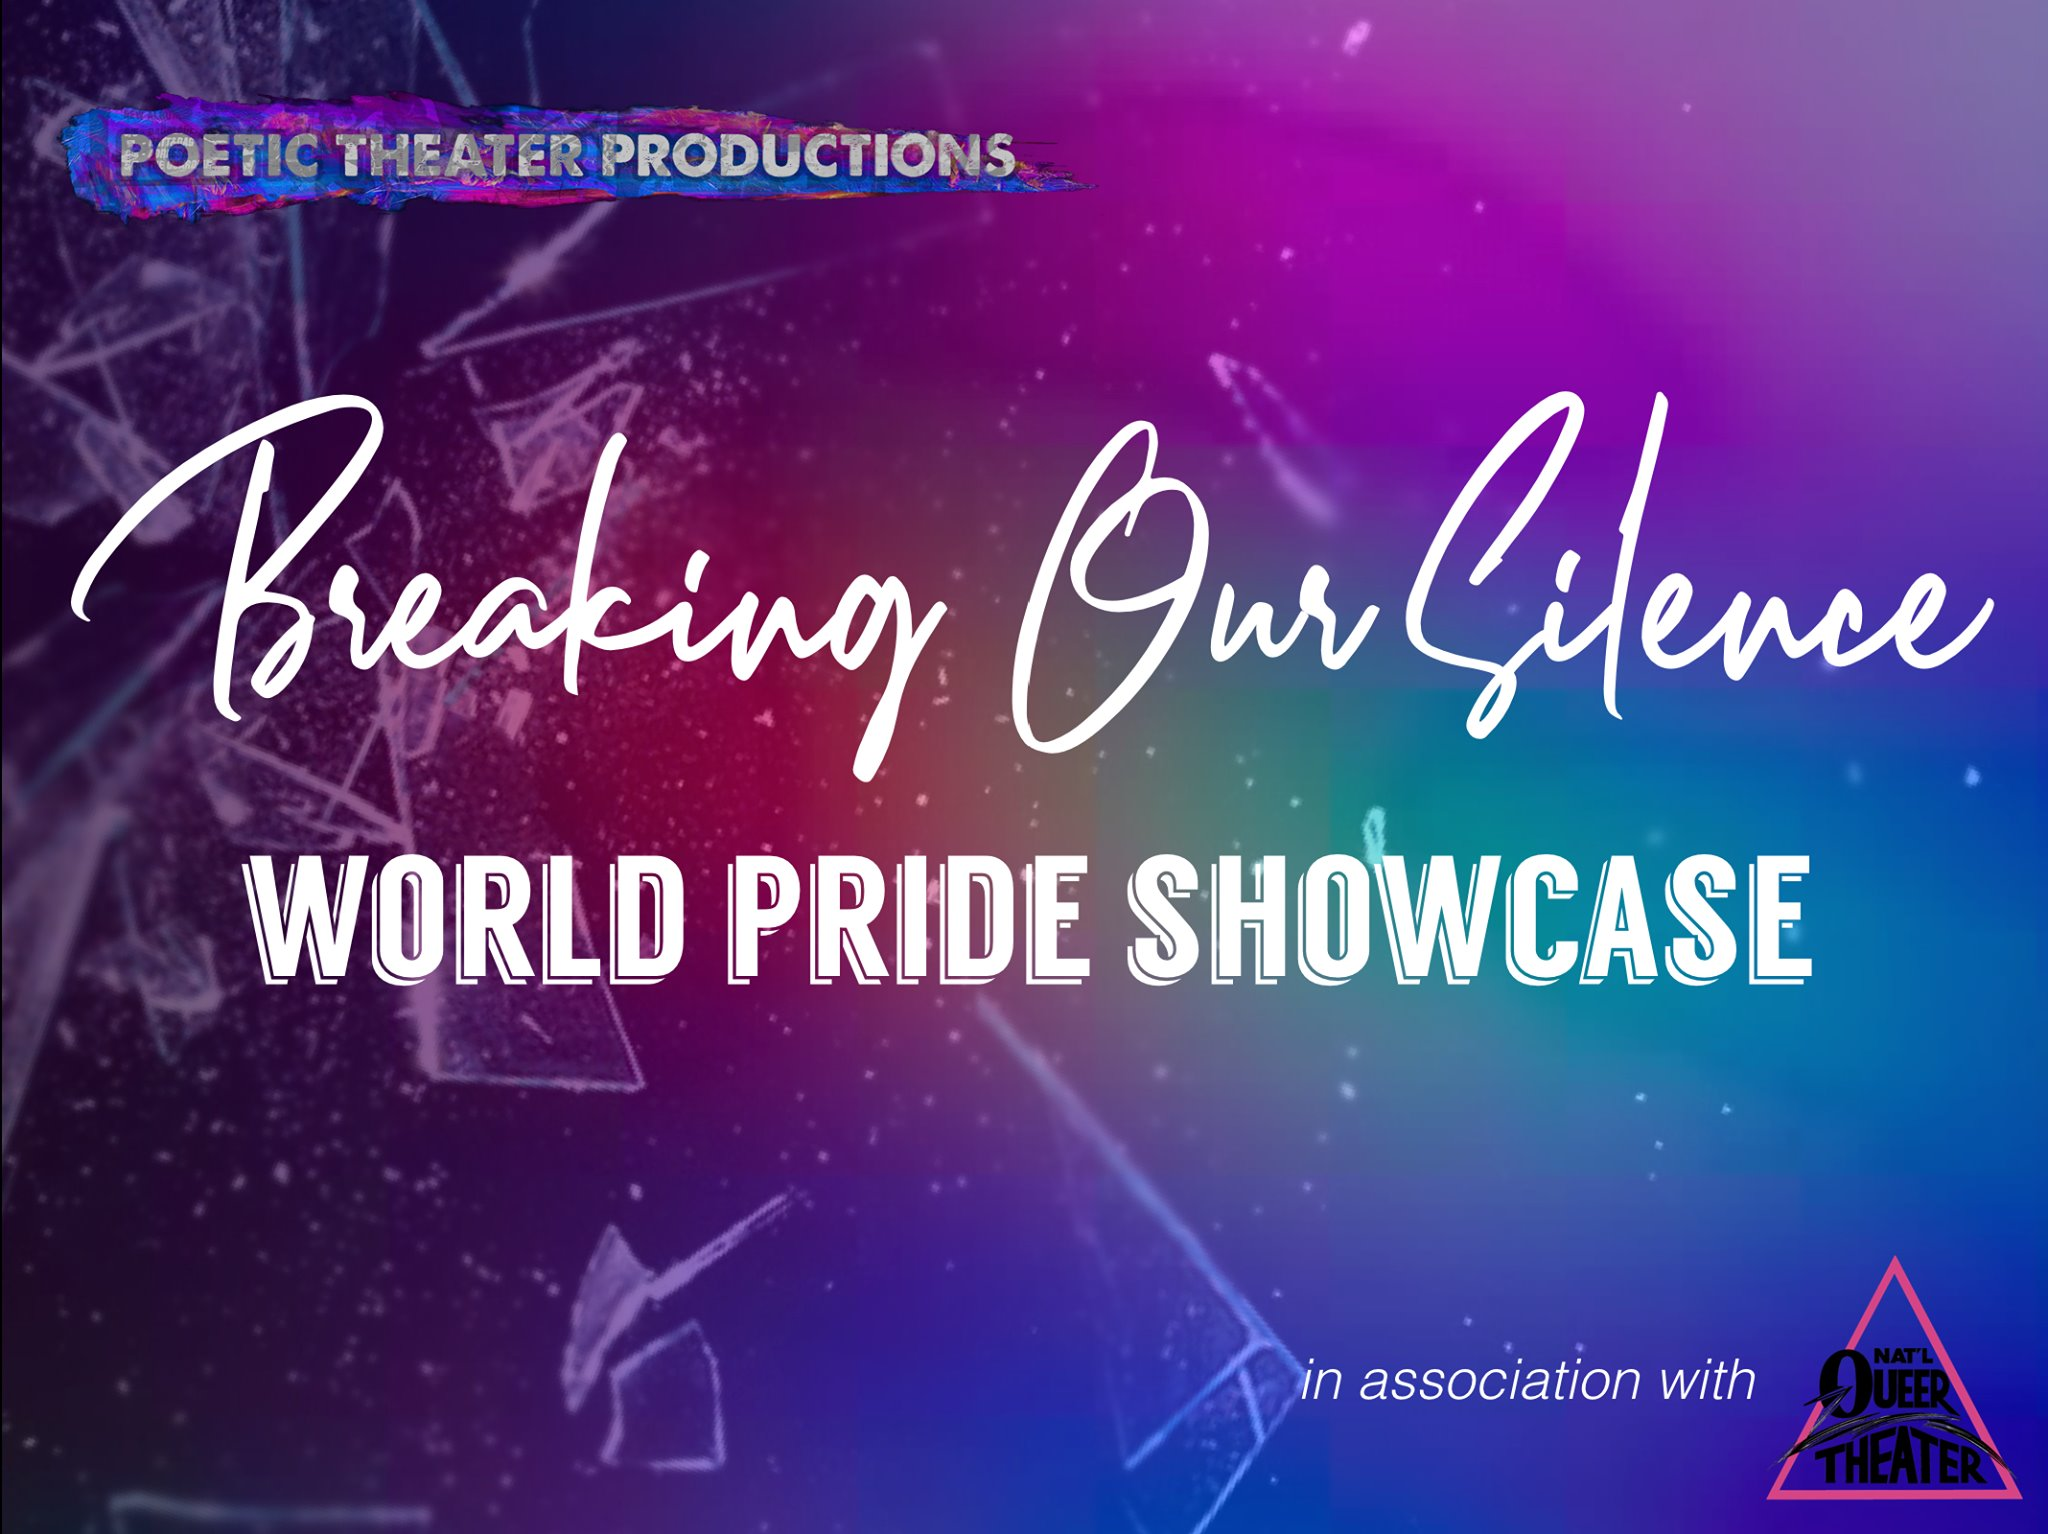 Breaking Our Silence: World Pride Showcase - Thursday, June 27th, 9:30 PMIRT Theater - 154 Christopher St, New York, New York, 1001450 years ago, the Stonewall Riots was a flashpoint of queer activists breaking the silence and claiming their right to exist. Now, we celebrate five decades of queer voices coming together in resistance, community, and pride.https://www.facebook.com/events/1280197668804796/